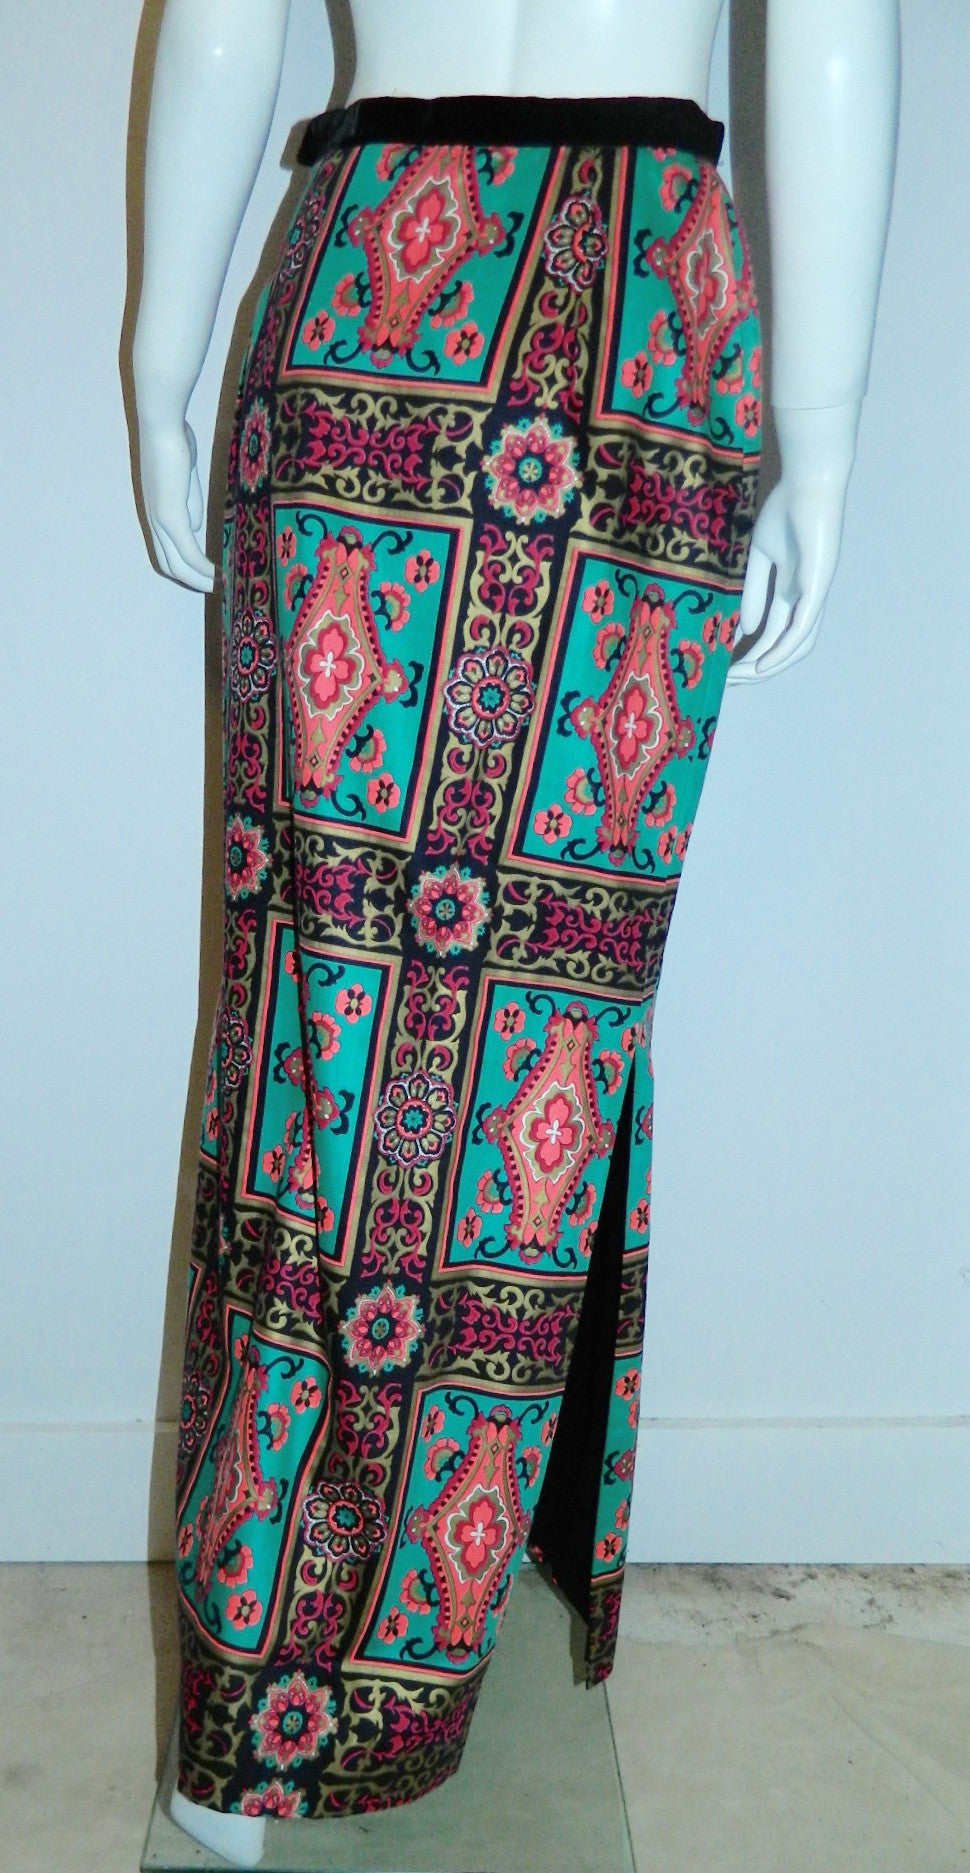 vintage Alex Coleman skirt / teal pink baroque frame print / wool side slit column skirt 1970s